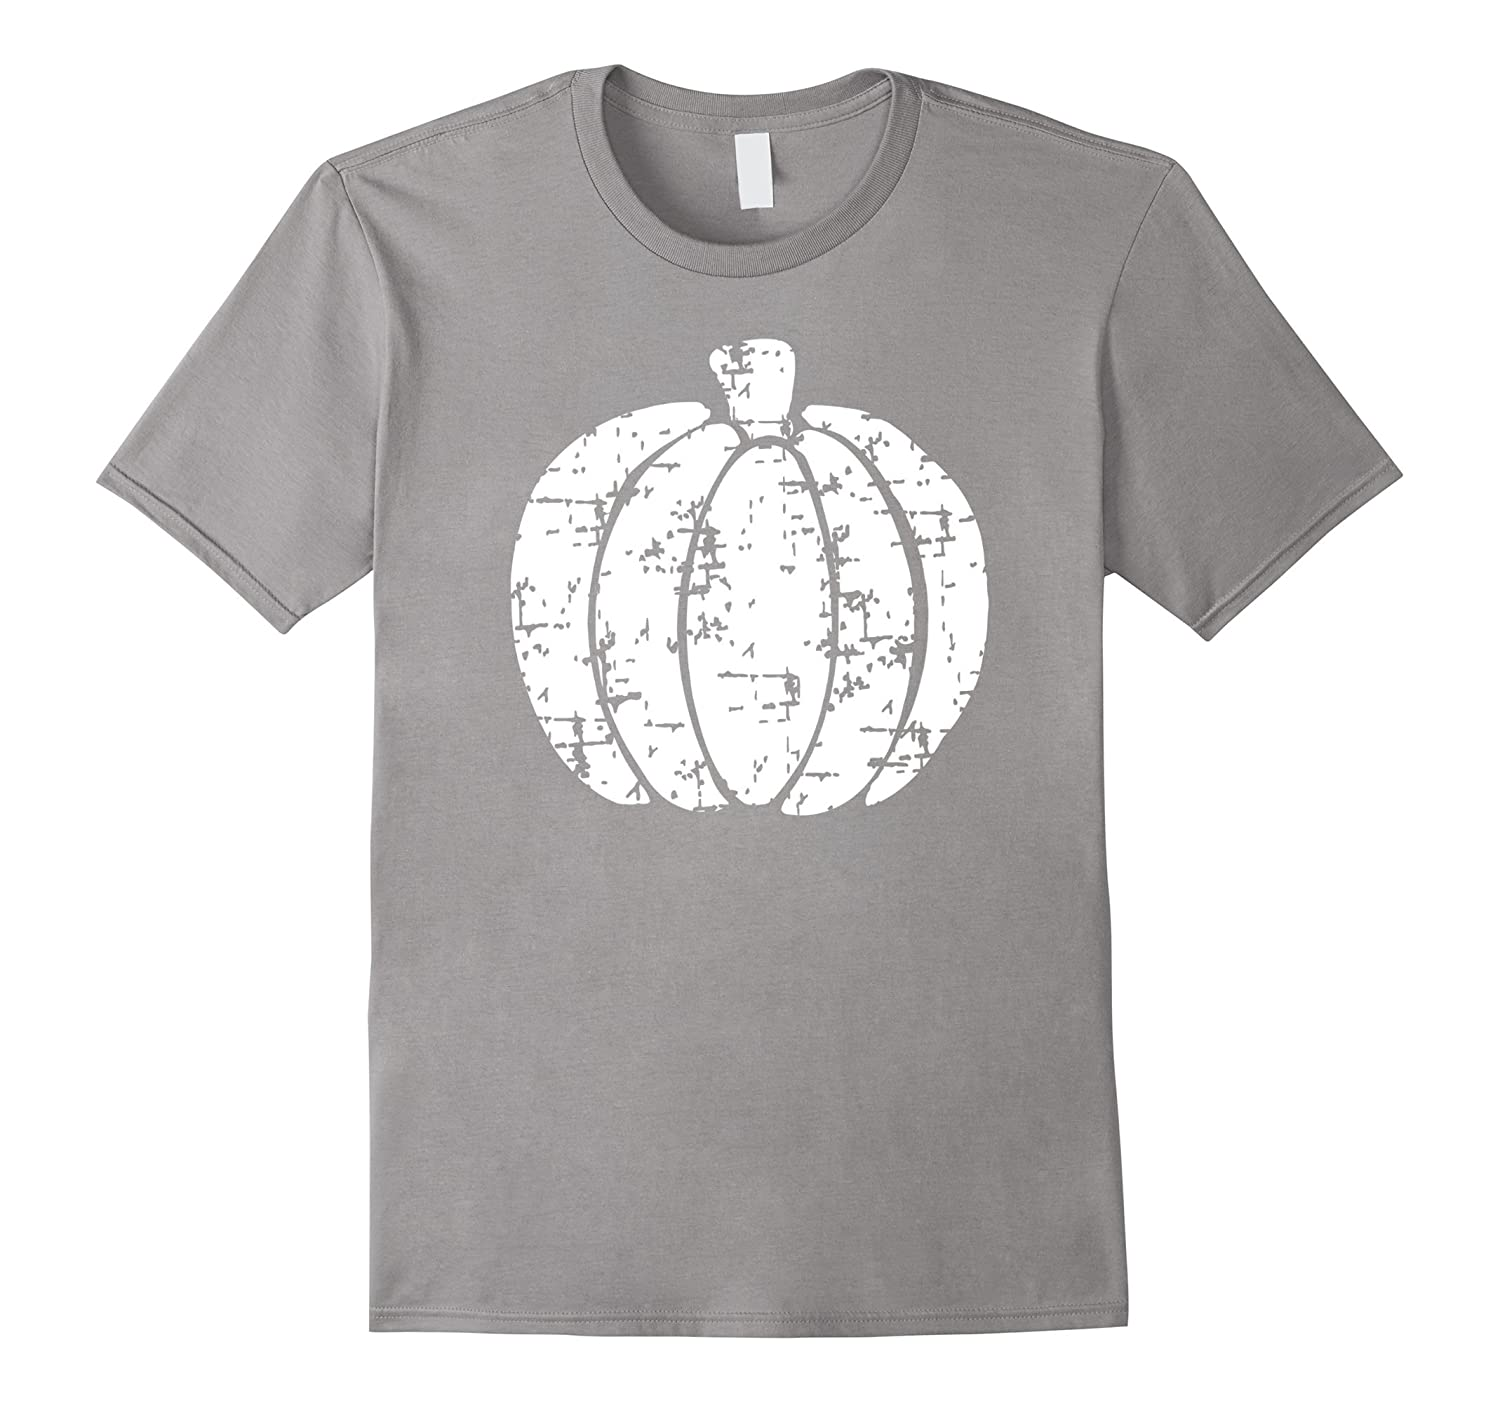 Halloween Shirt, Grunge Distressed Vintage Pumpkin T-Shirt-T-Shirt